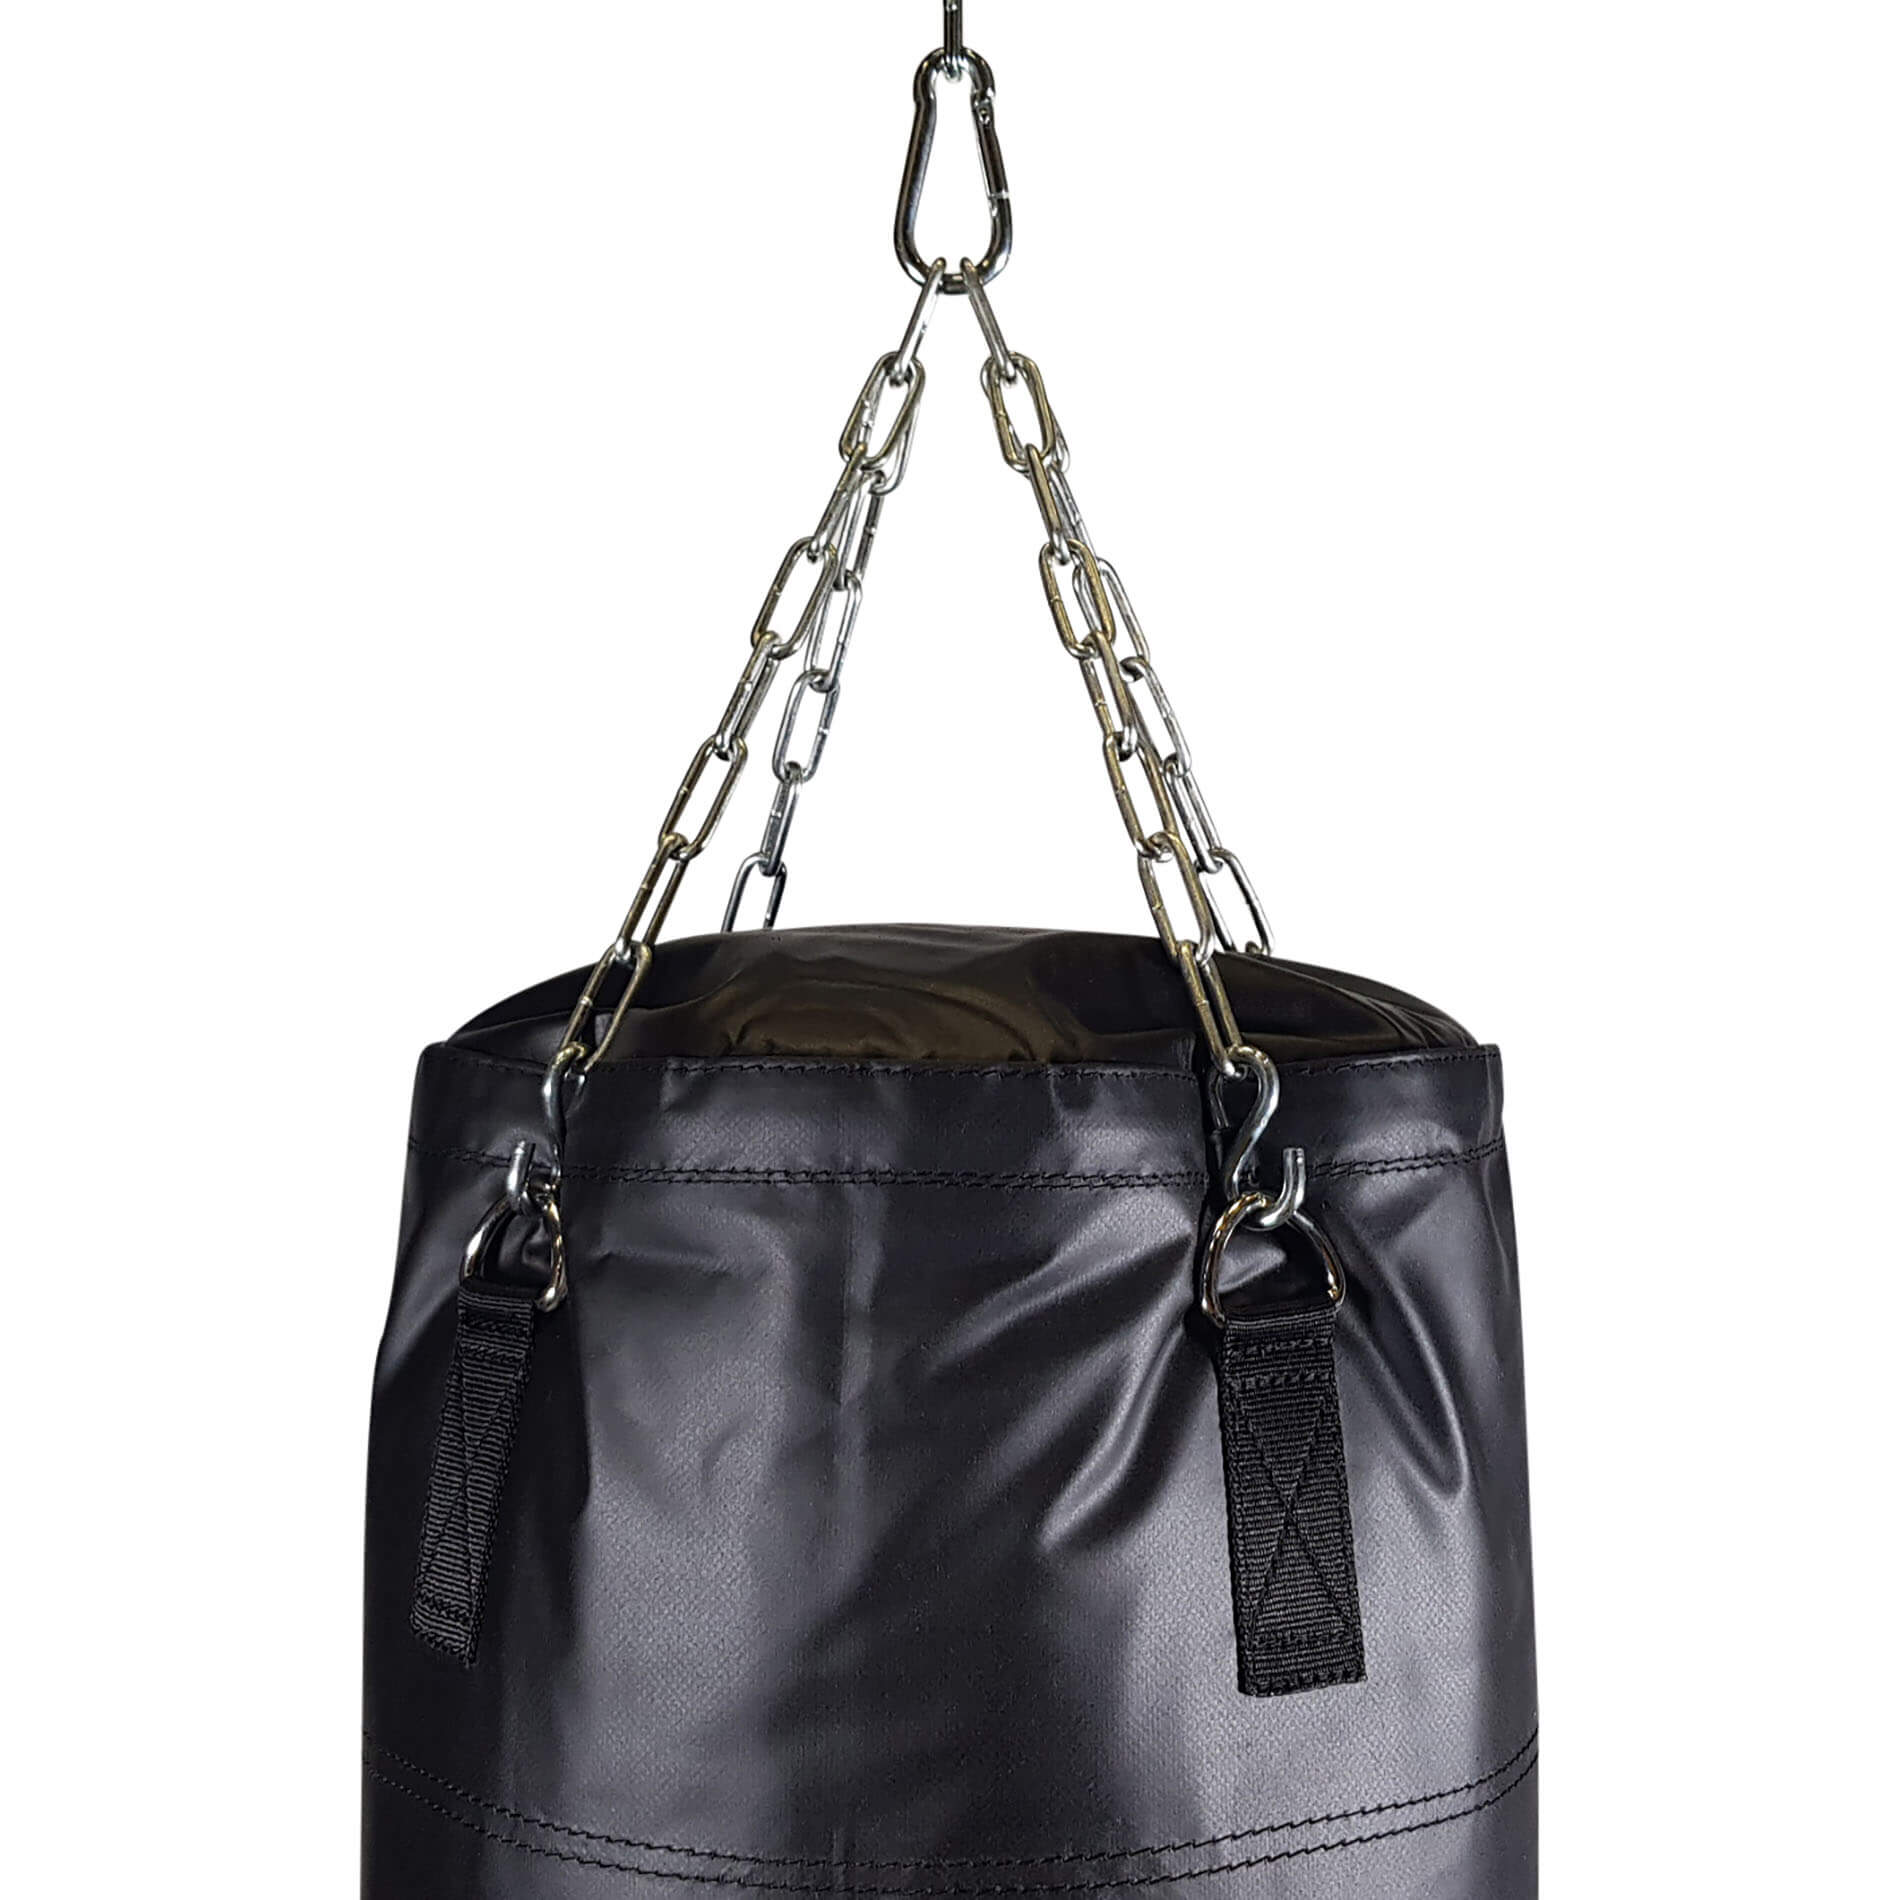 Boxing Bag Filled with Chain - 150cm